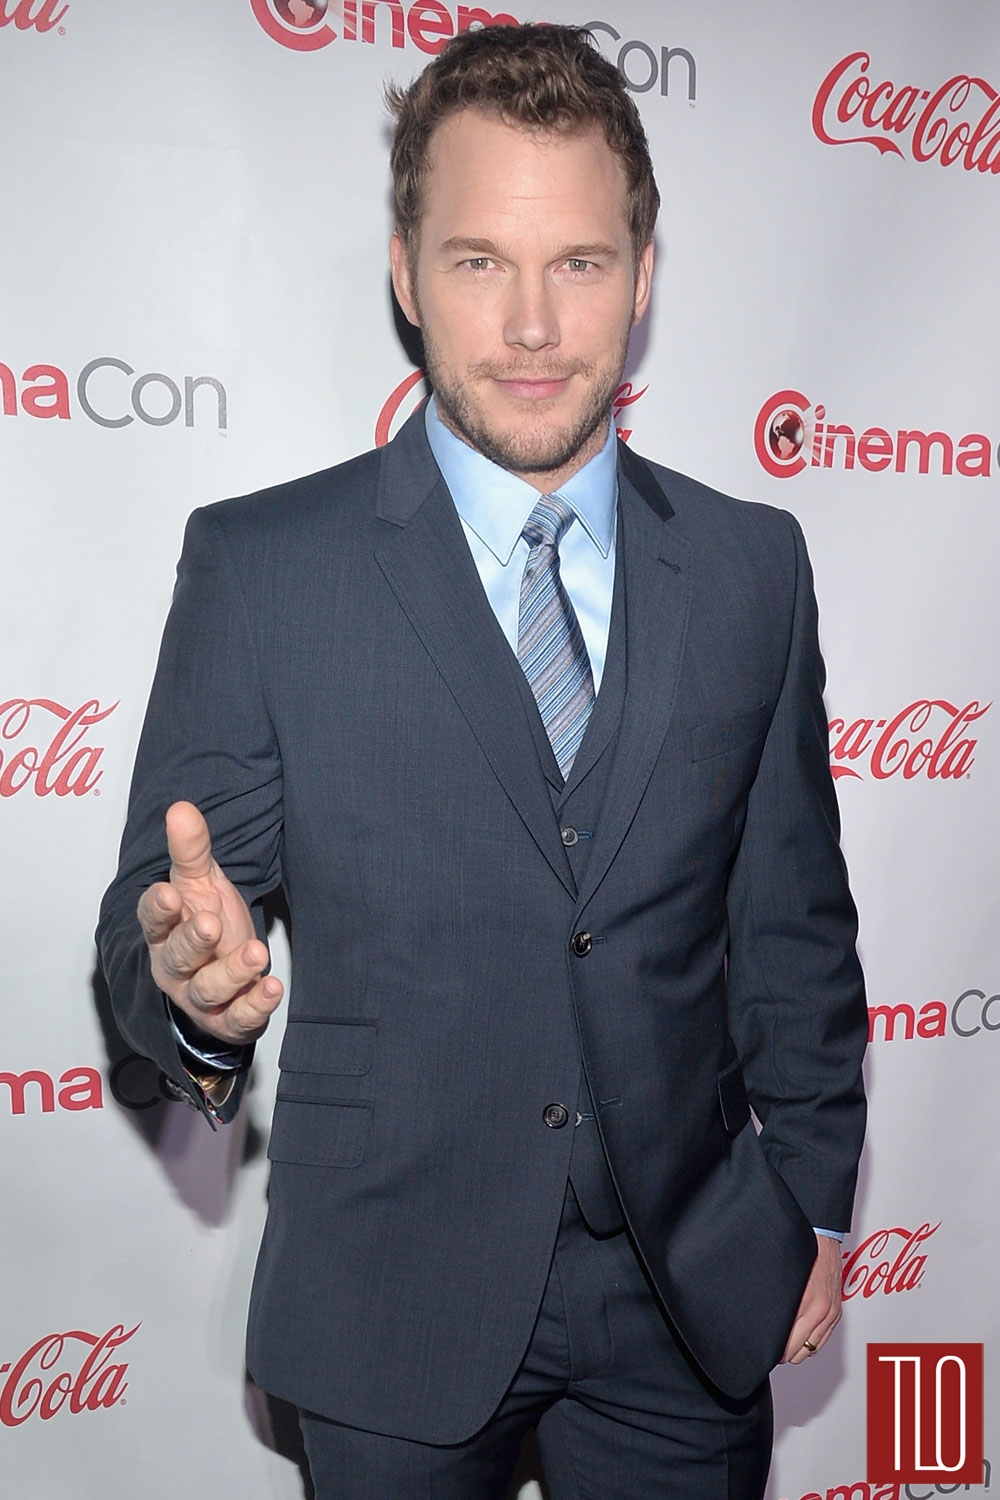 Chris-Pratt-CinemaCon-2014-Awards-Tom-Lorenzo-Site-TLO (1)